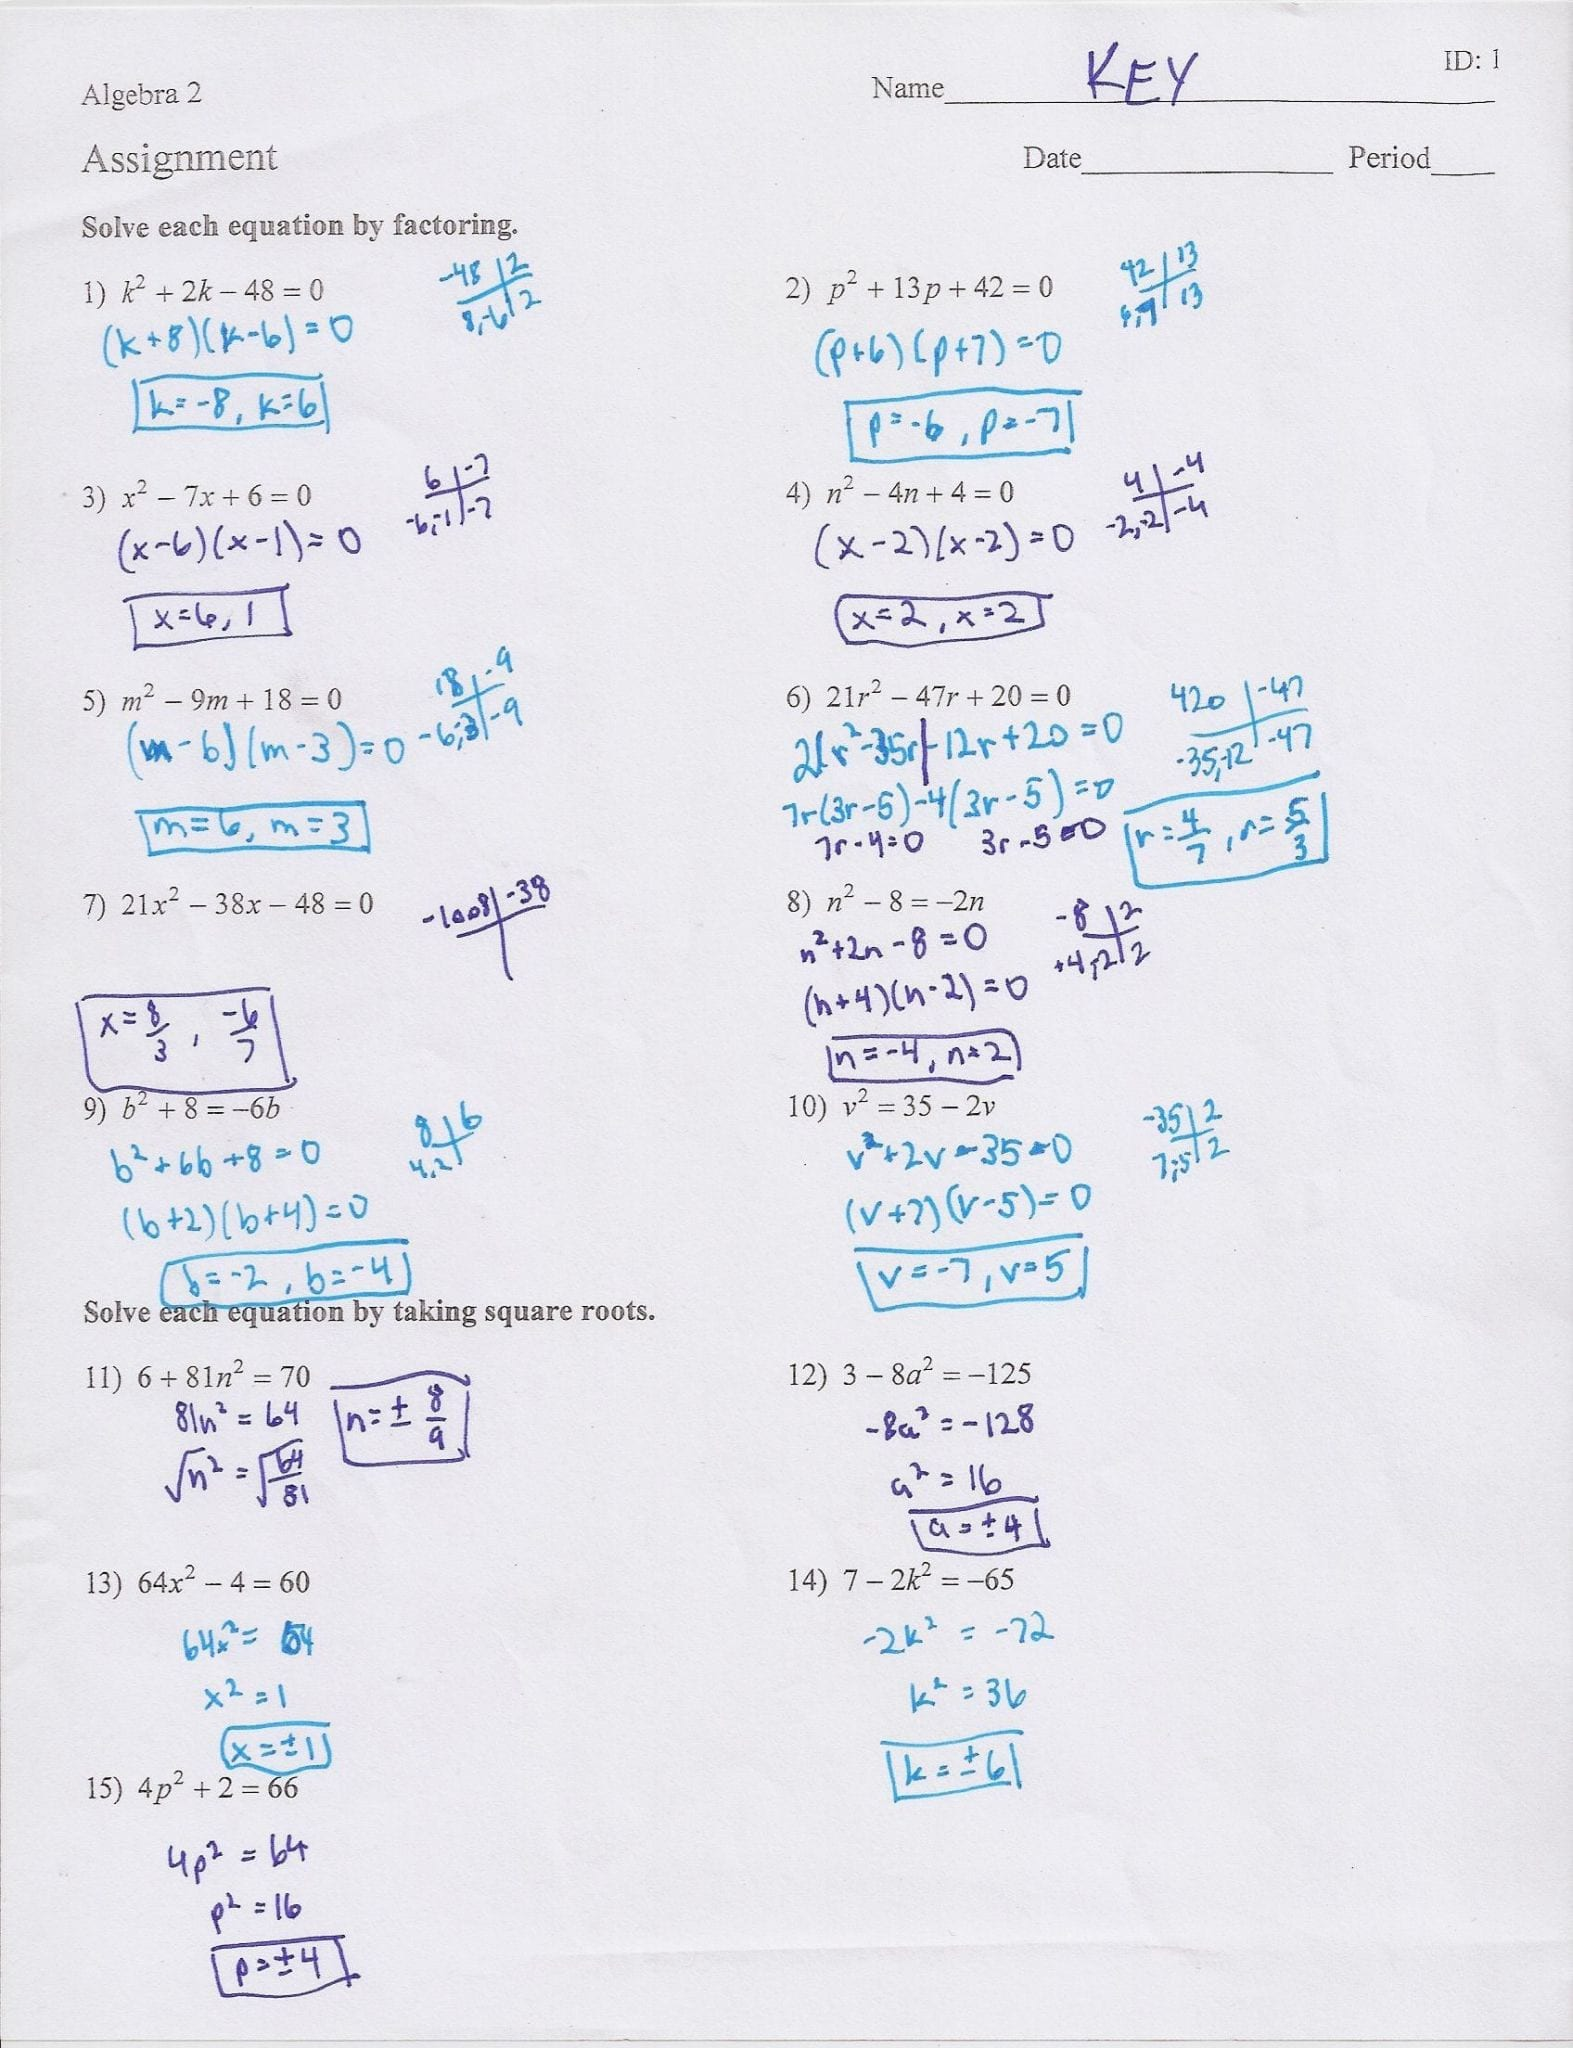 Solving Quadratic Equations By Factoring Worksheet Answers